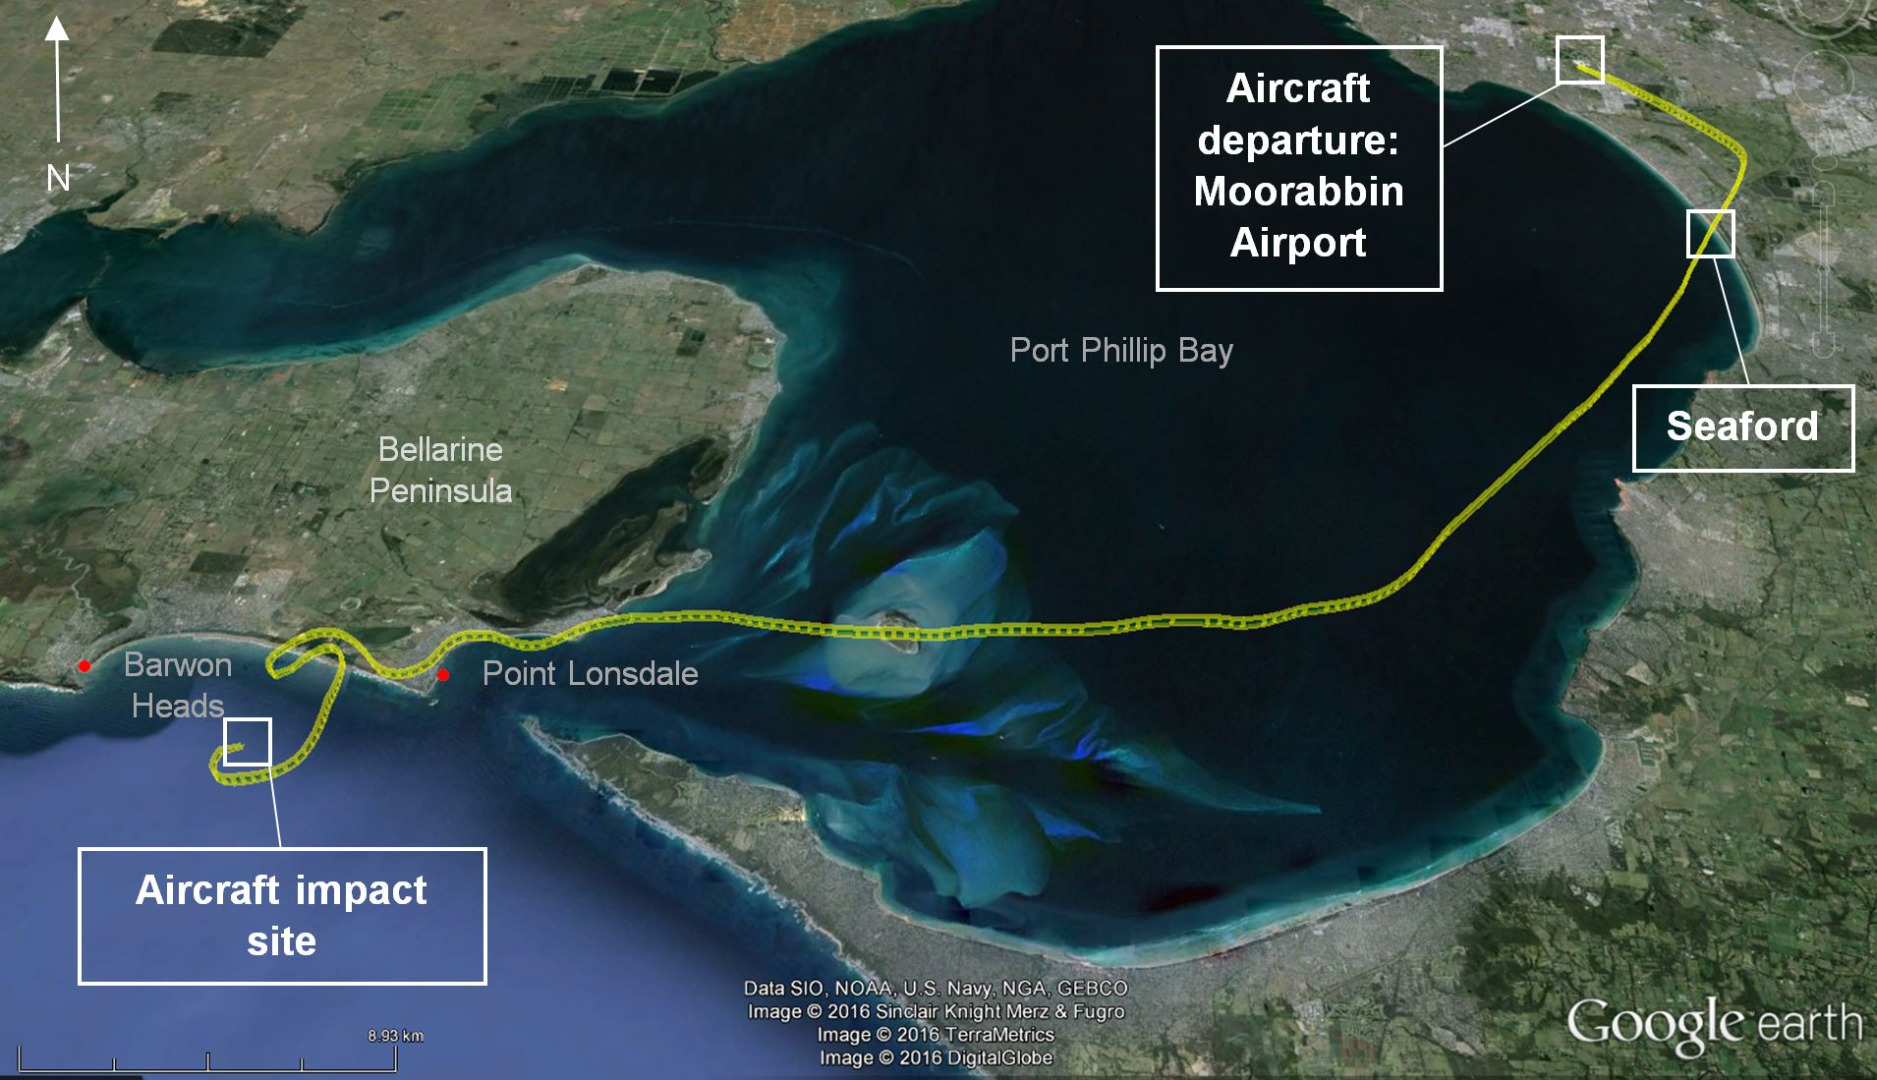 Investigation AO Loss Of Control And Collision With - Earth map show airplane travell from us to austrialia